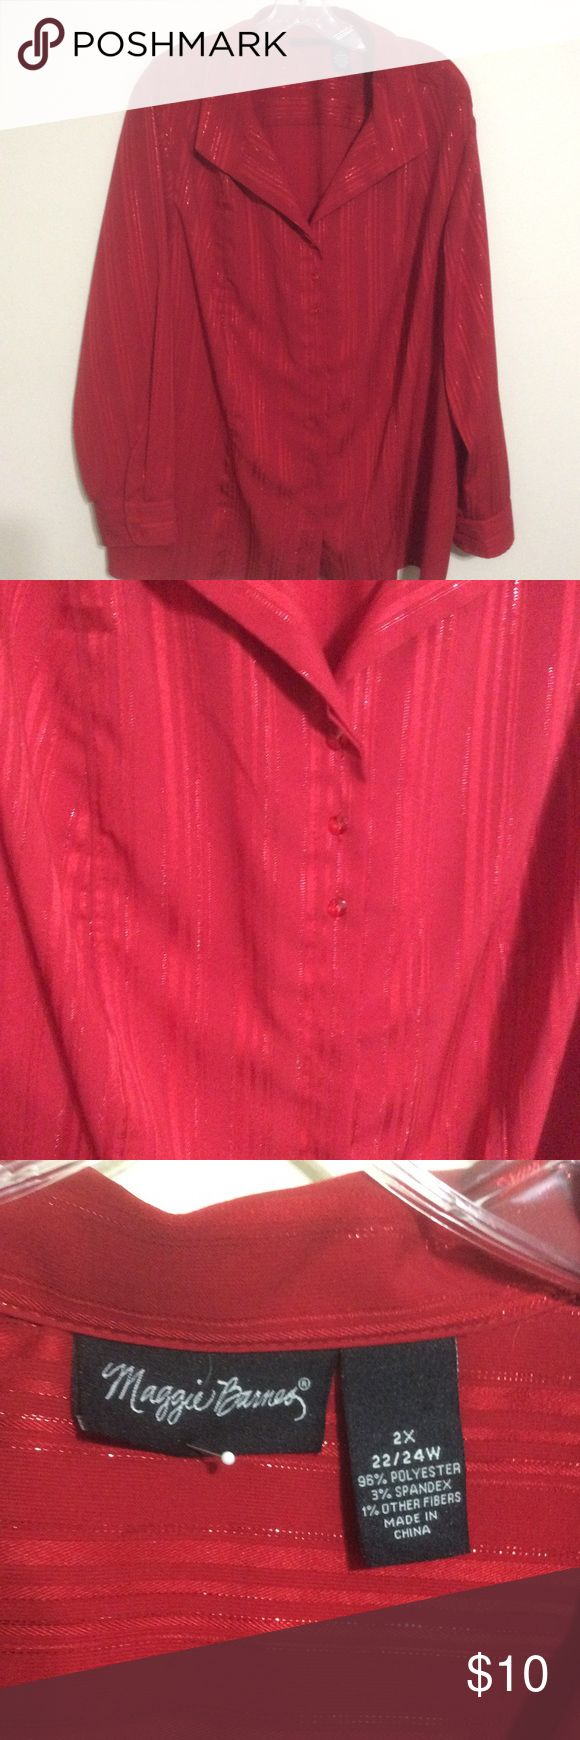 """Woman's Blouse (Maggie Barnes) Beautiful red  and red metallic  Blouse  with red glass buttons .Blouse is 28"""" long and 24"""" sleeves . Sleeves have cuffs with red glass buttons . Polyester and spandex and is washable like new Maggie Barnes Tops Blouses"""